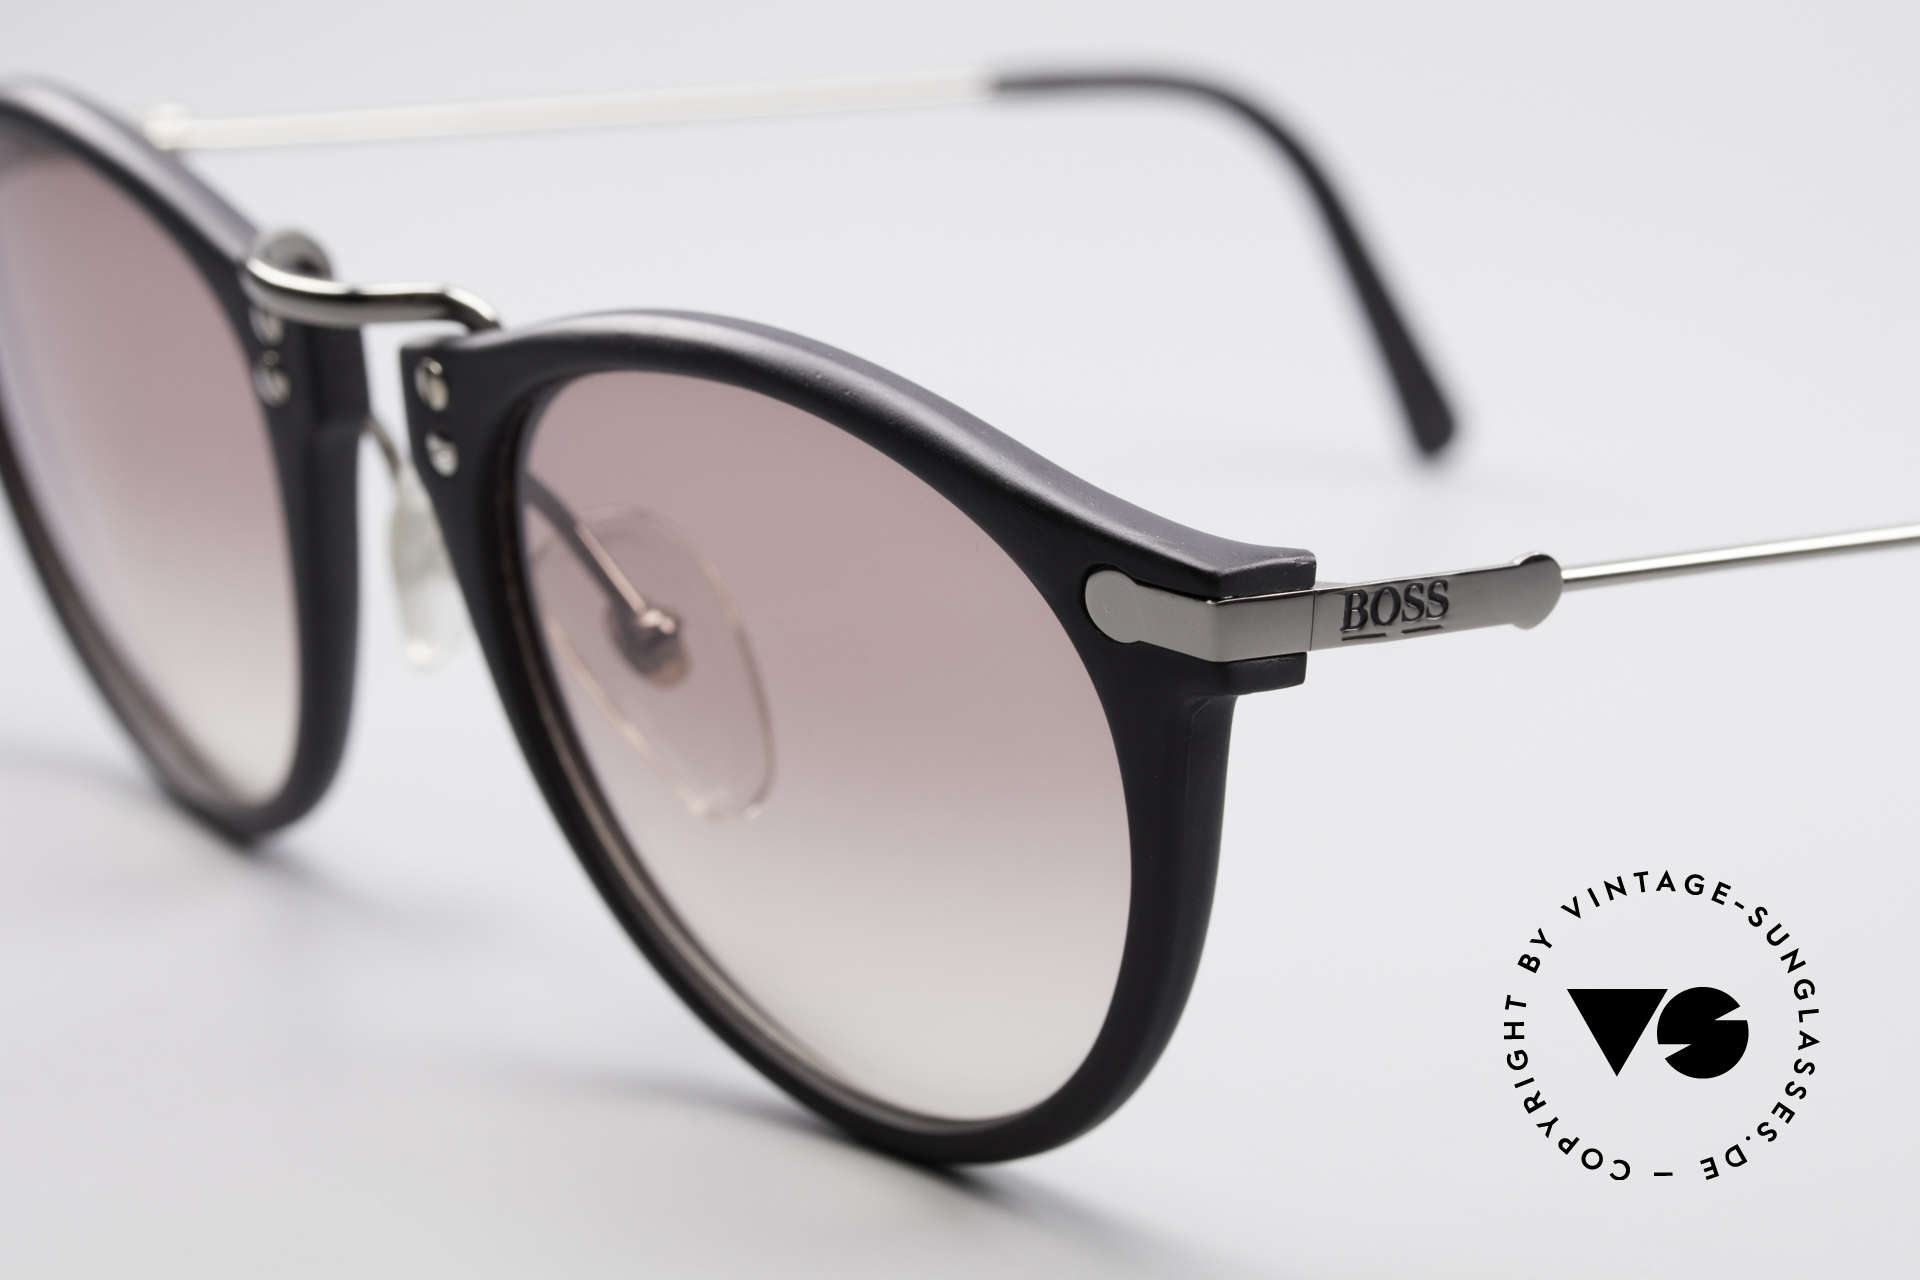 BOSS 5152 - L Panto Style Sunglasses Large, timeless combination of colors, design & materials, Made for Men